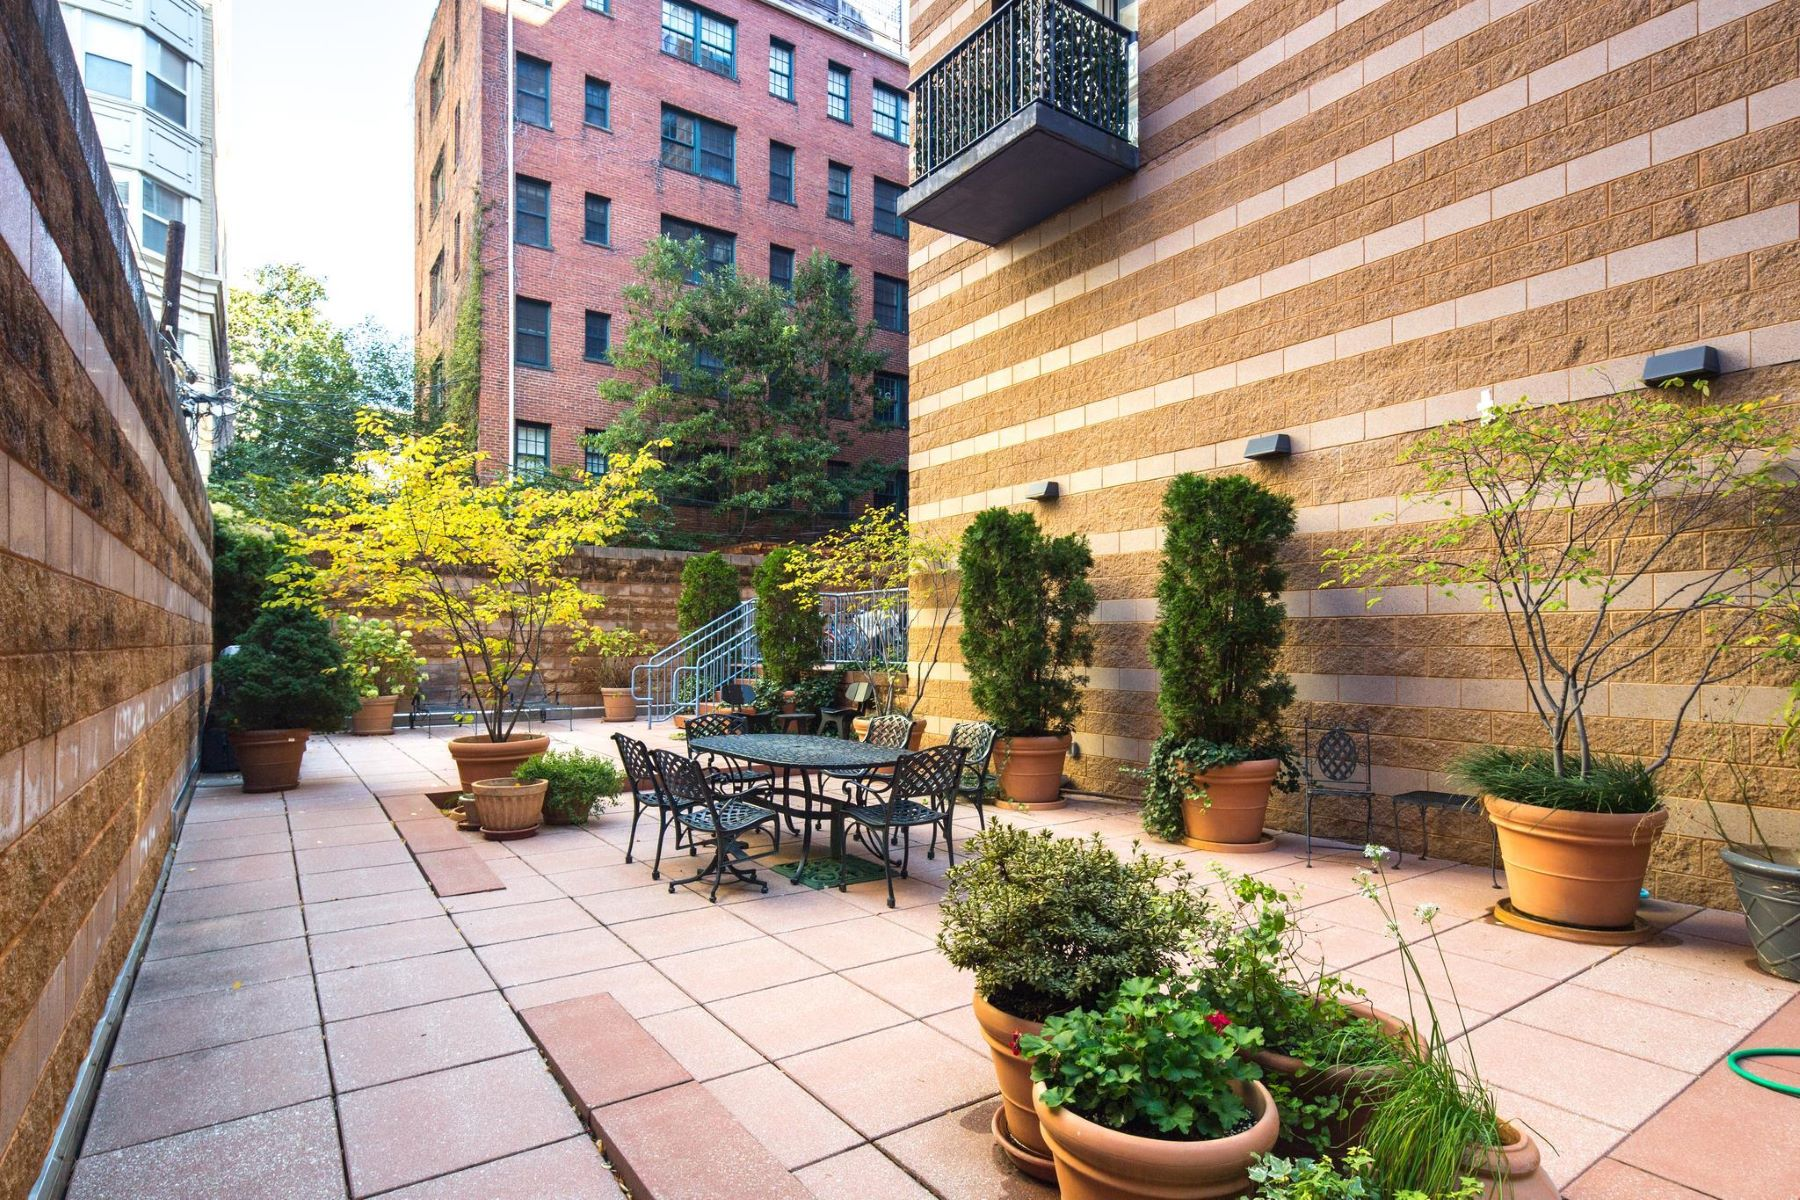 Additional photo for property listing at 1001 L St Nw #409 1001 L St Nw #409 Washington, District Of Columbia 20001 United States